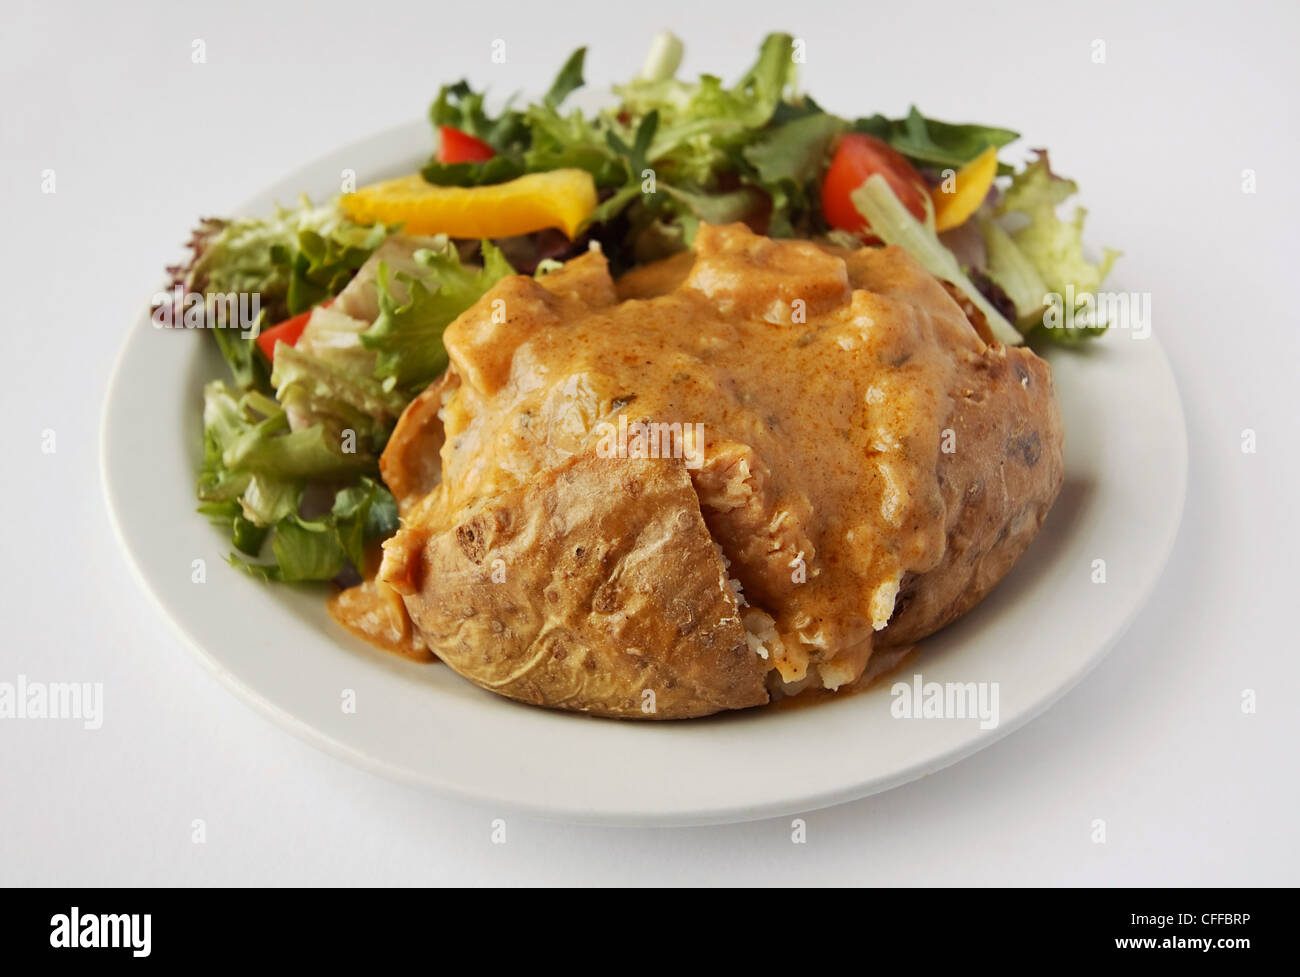 baked potato with curry filler on a plate with side salad - Stock Image